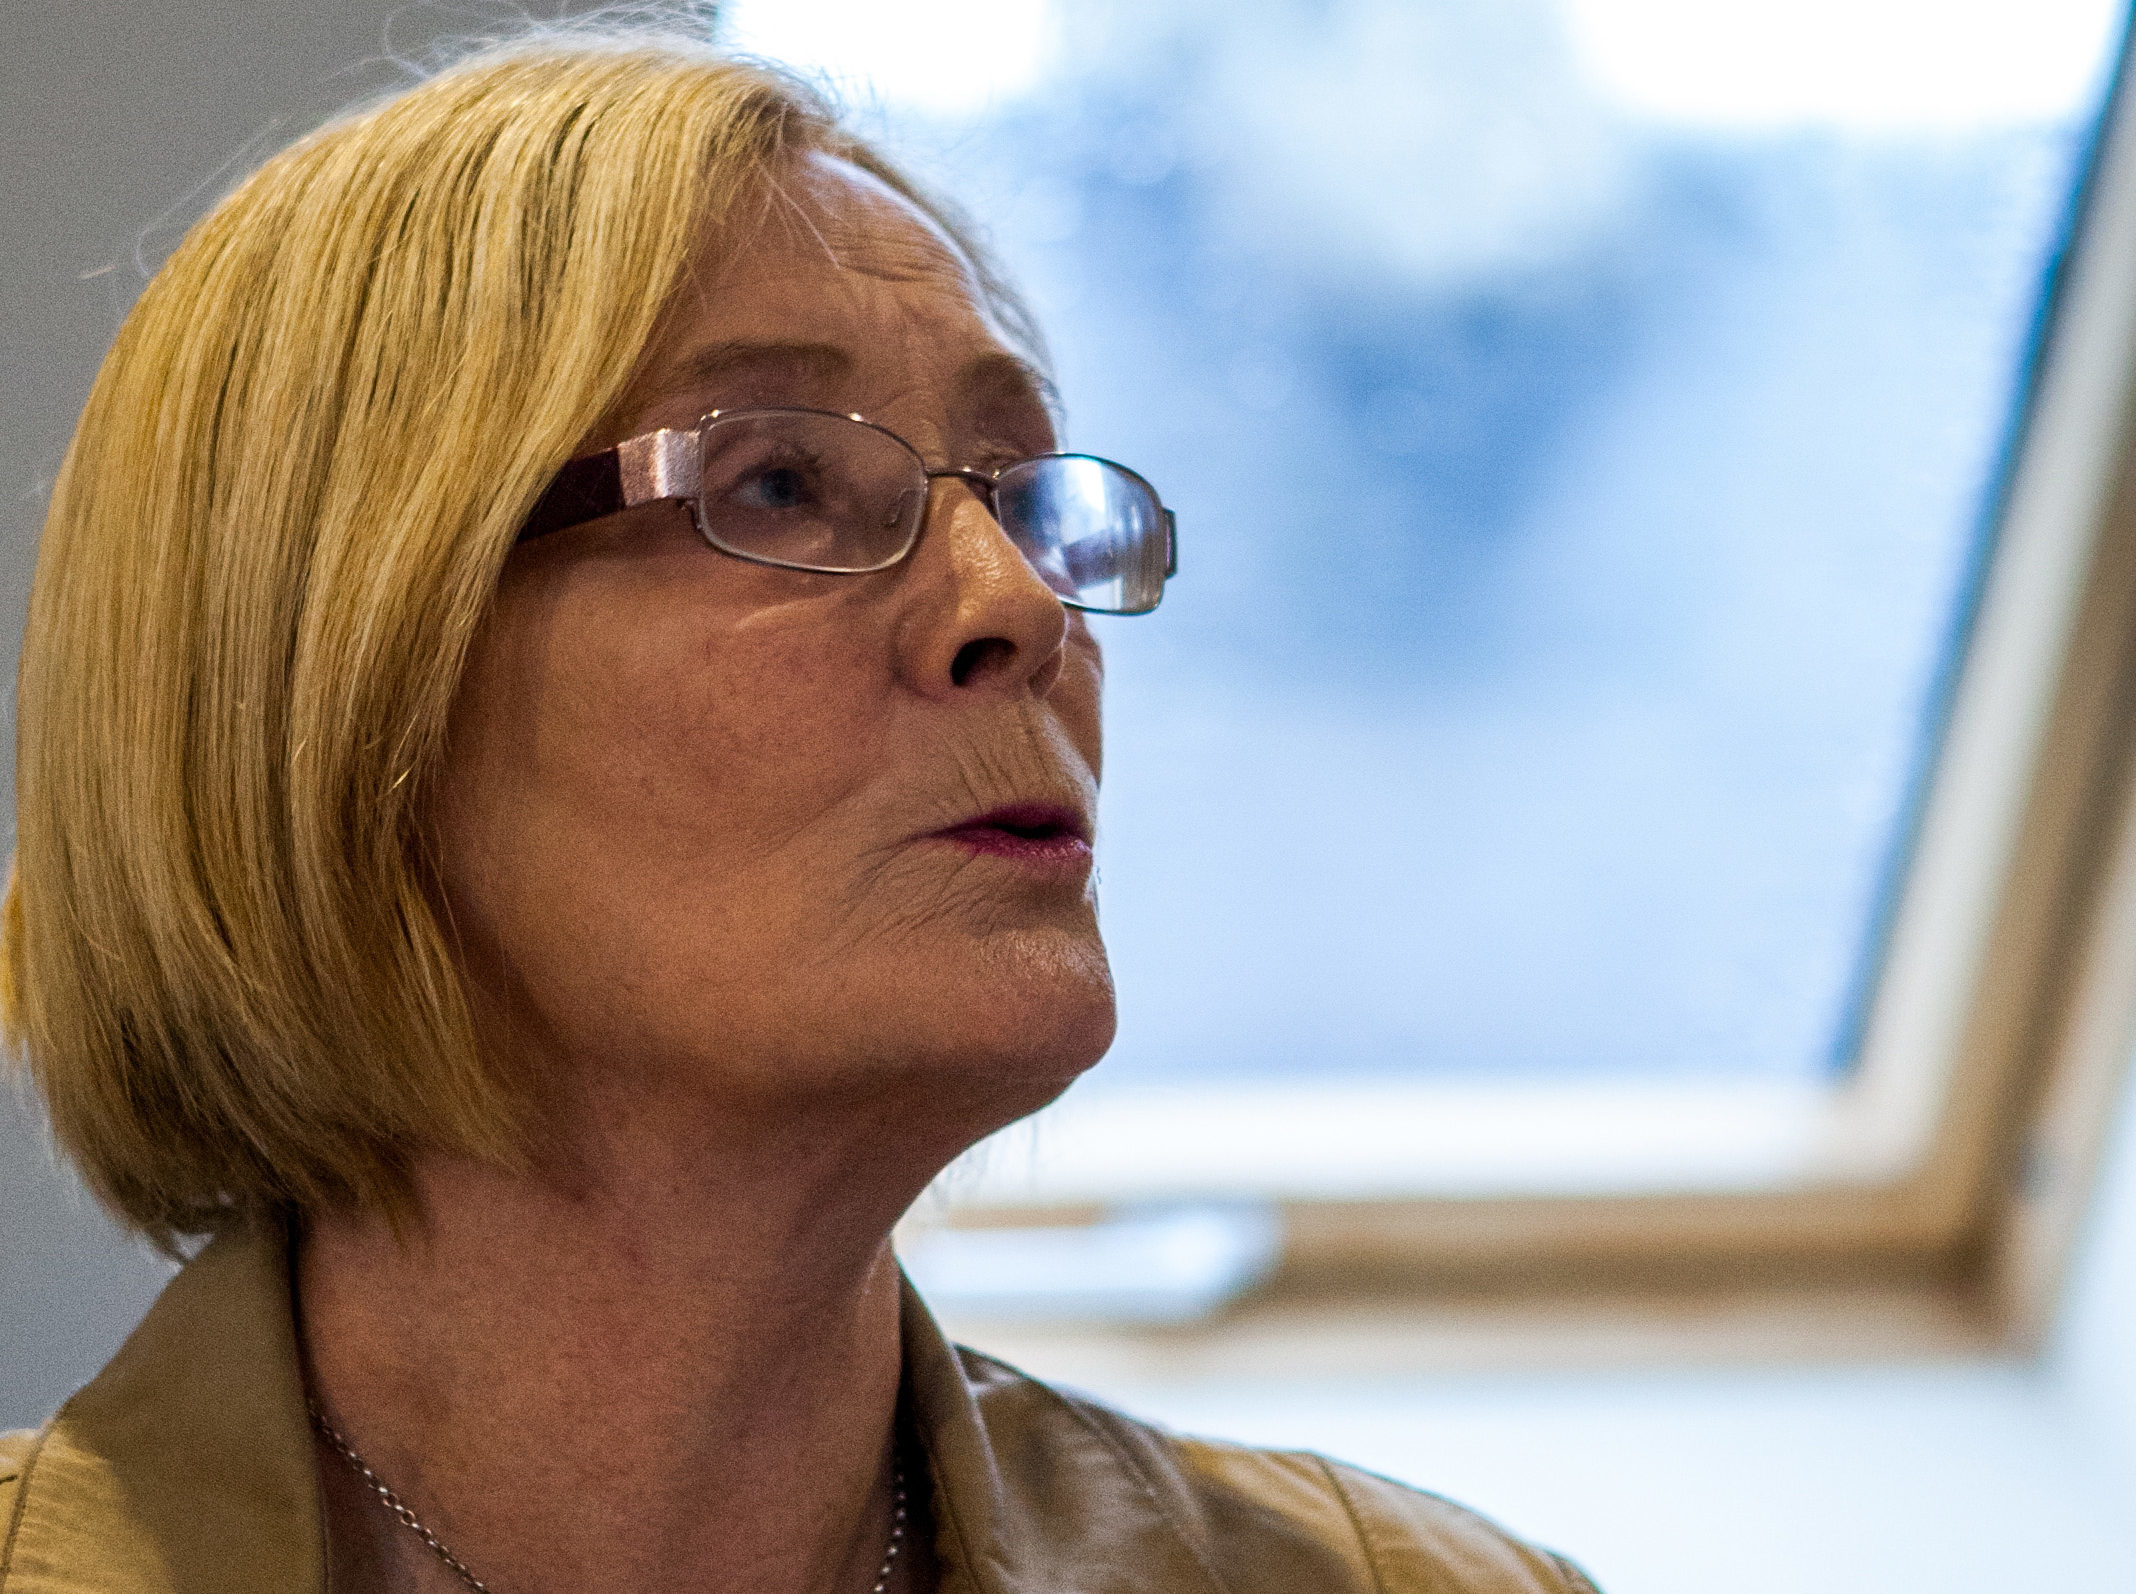 Tricia Marwick was the first female Presiding Officer of the Scottish Parliament.